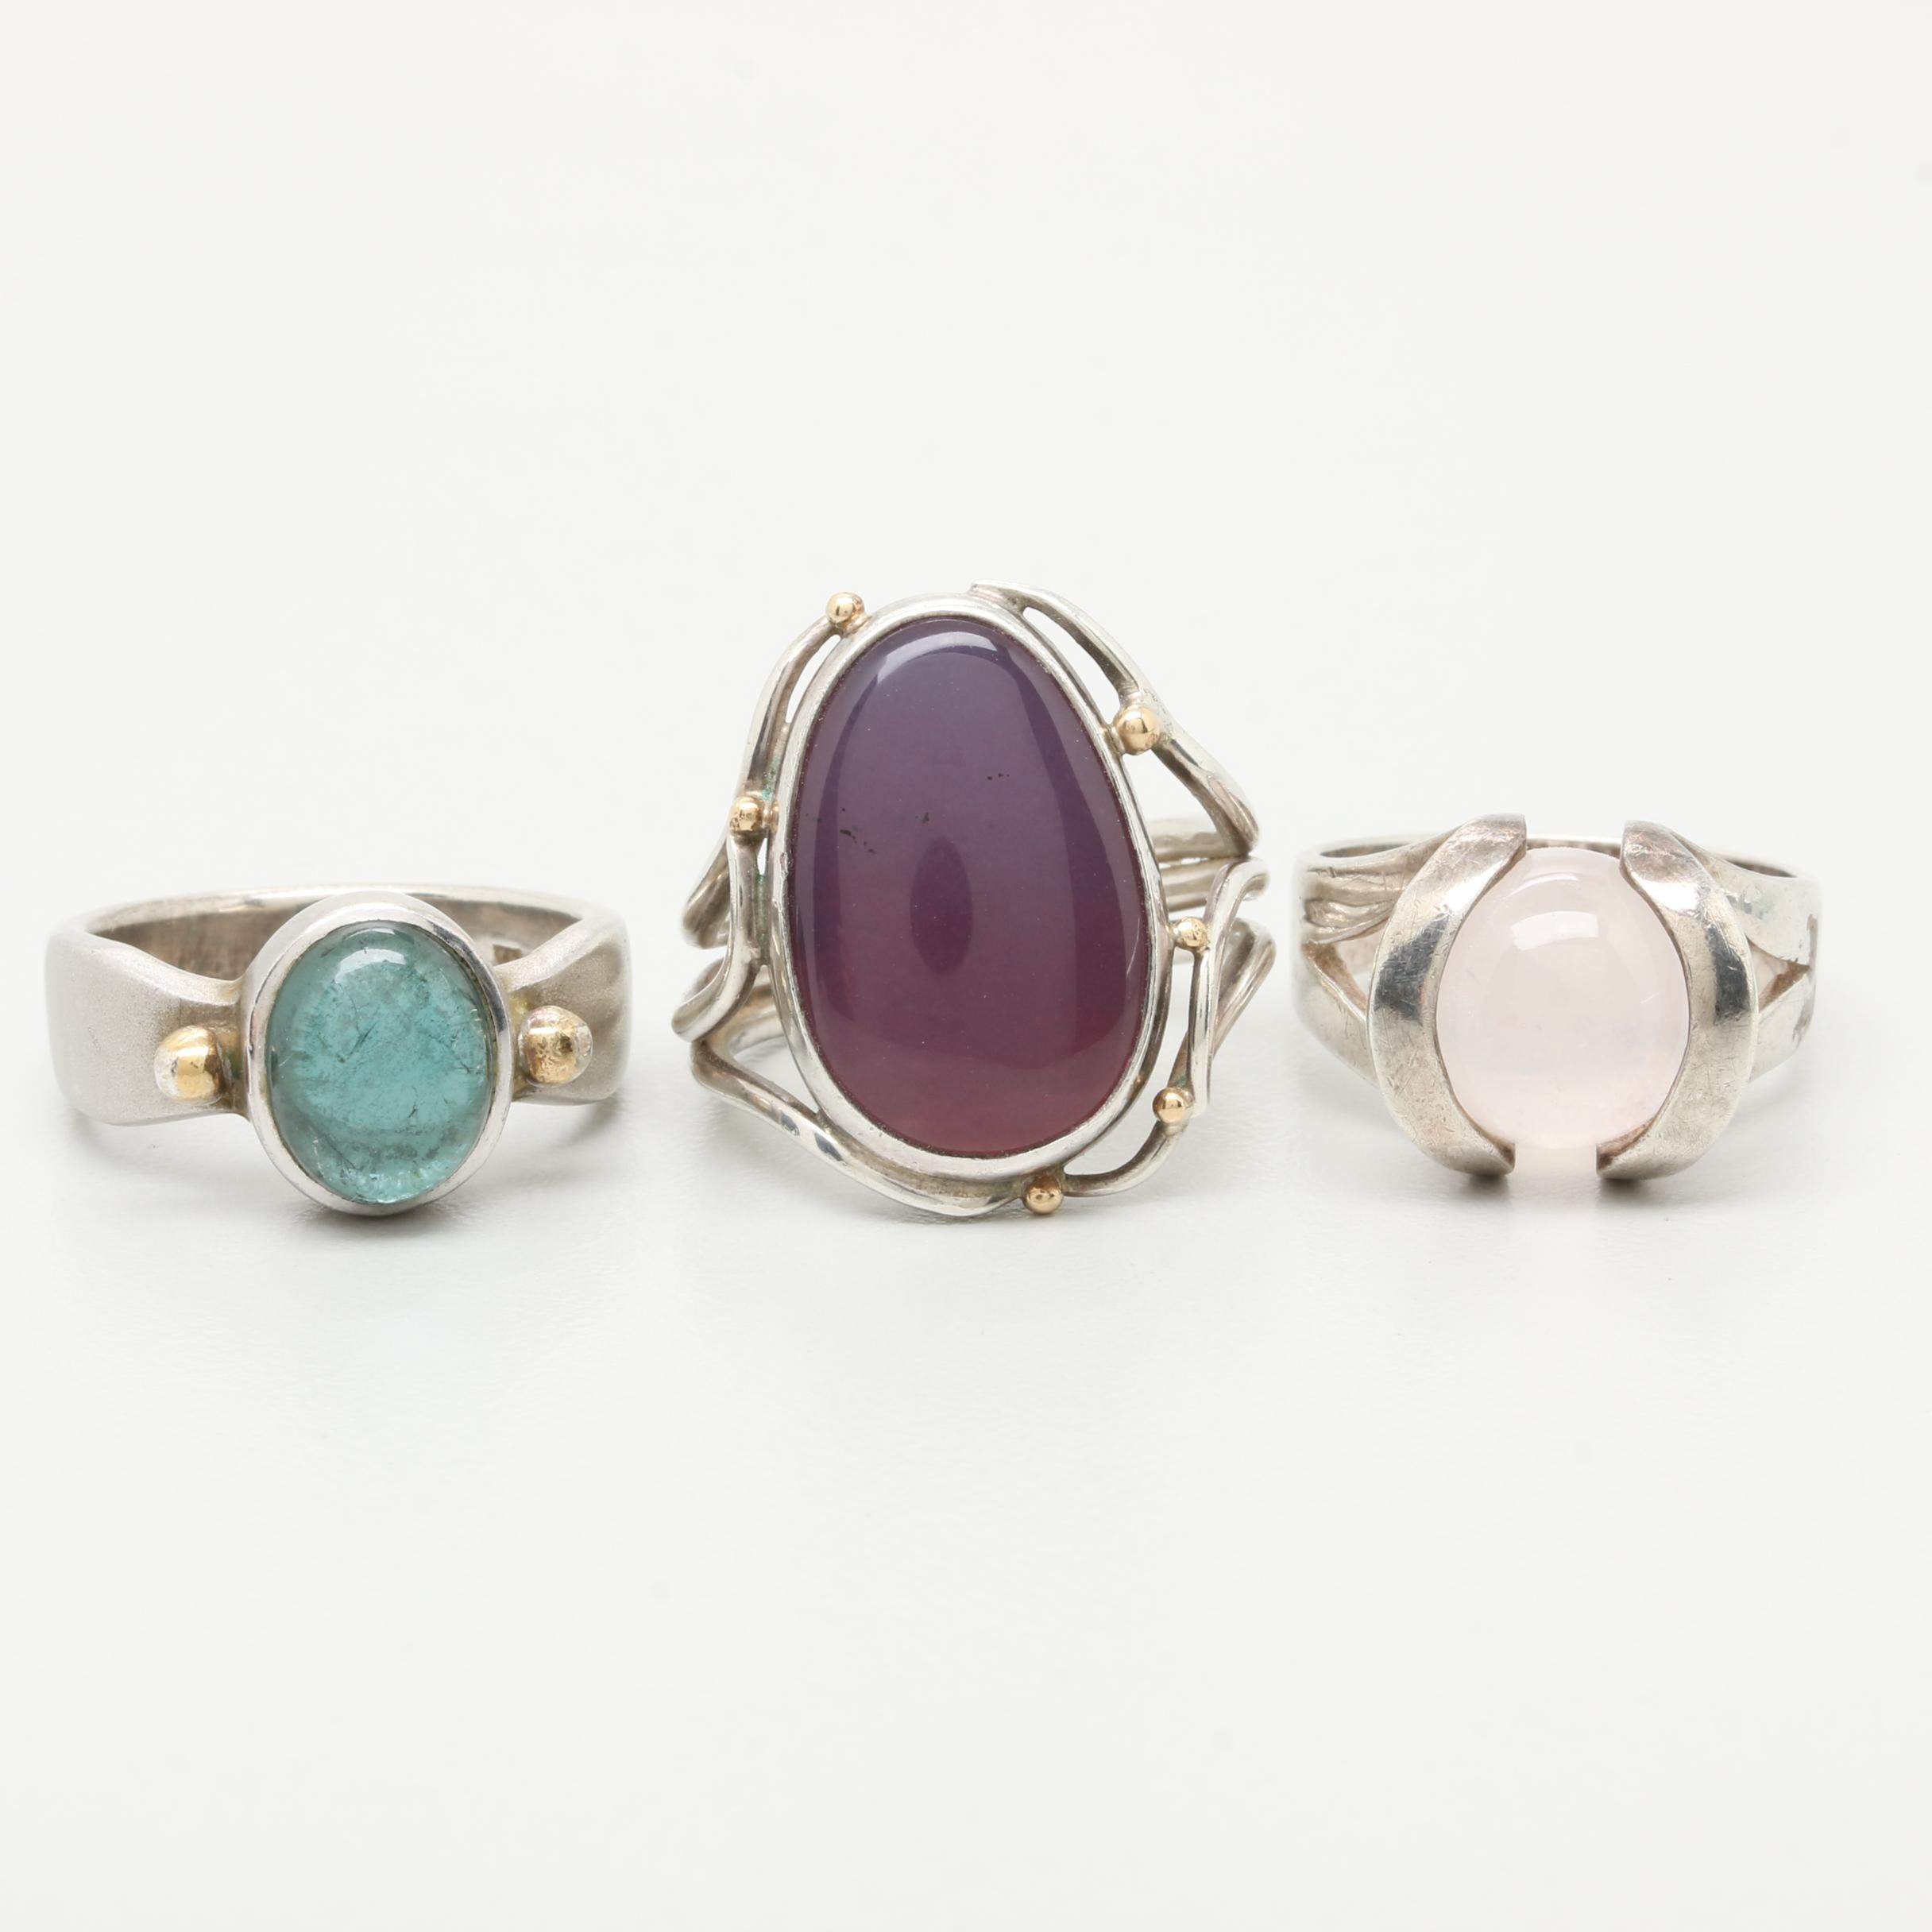 Sterling Ring Assortment Including Chalcedony, Rose Quartz, and Tourmaline